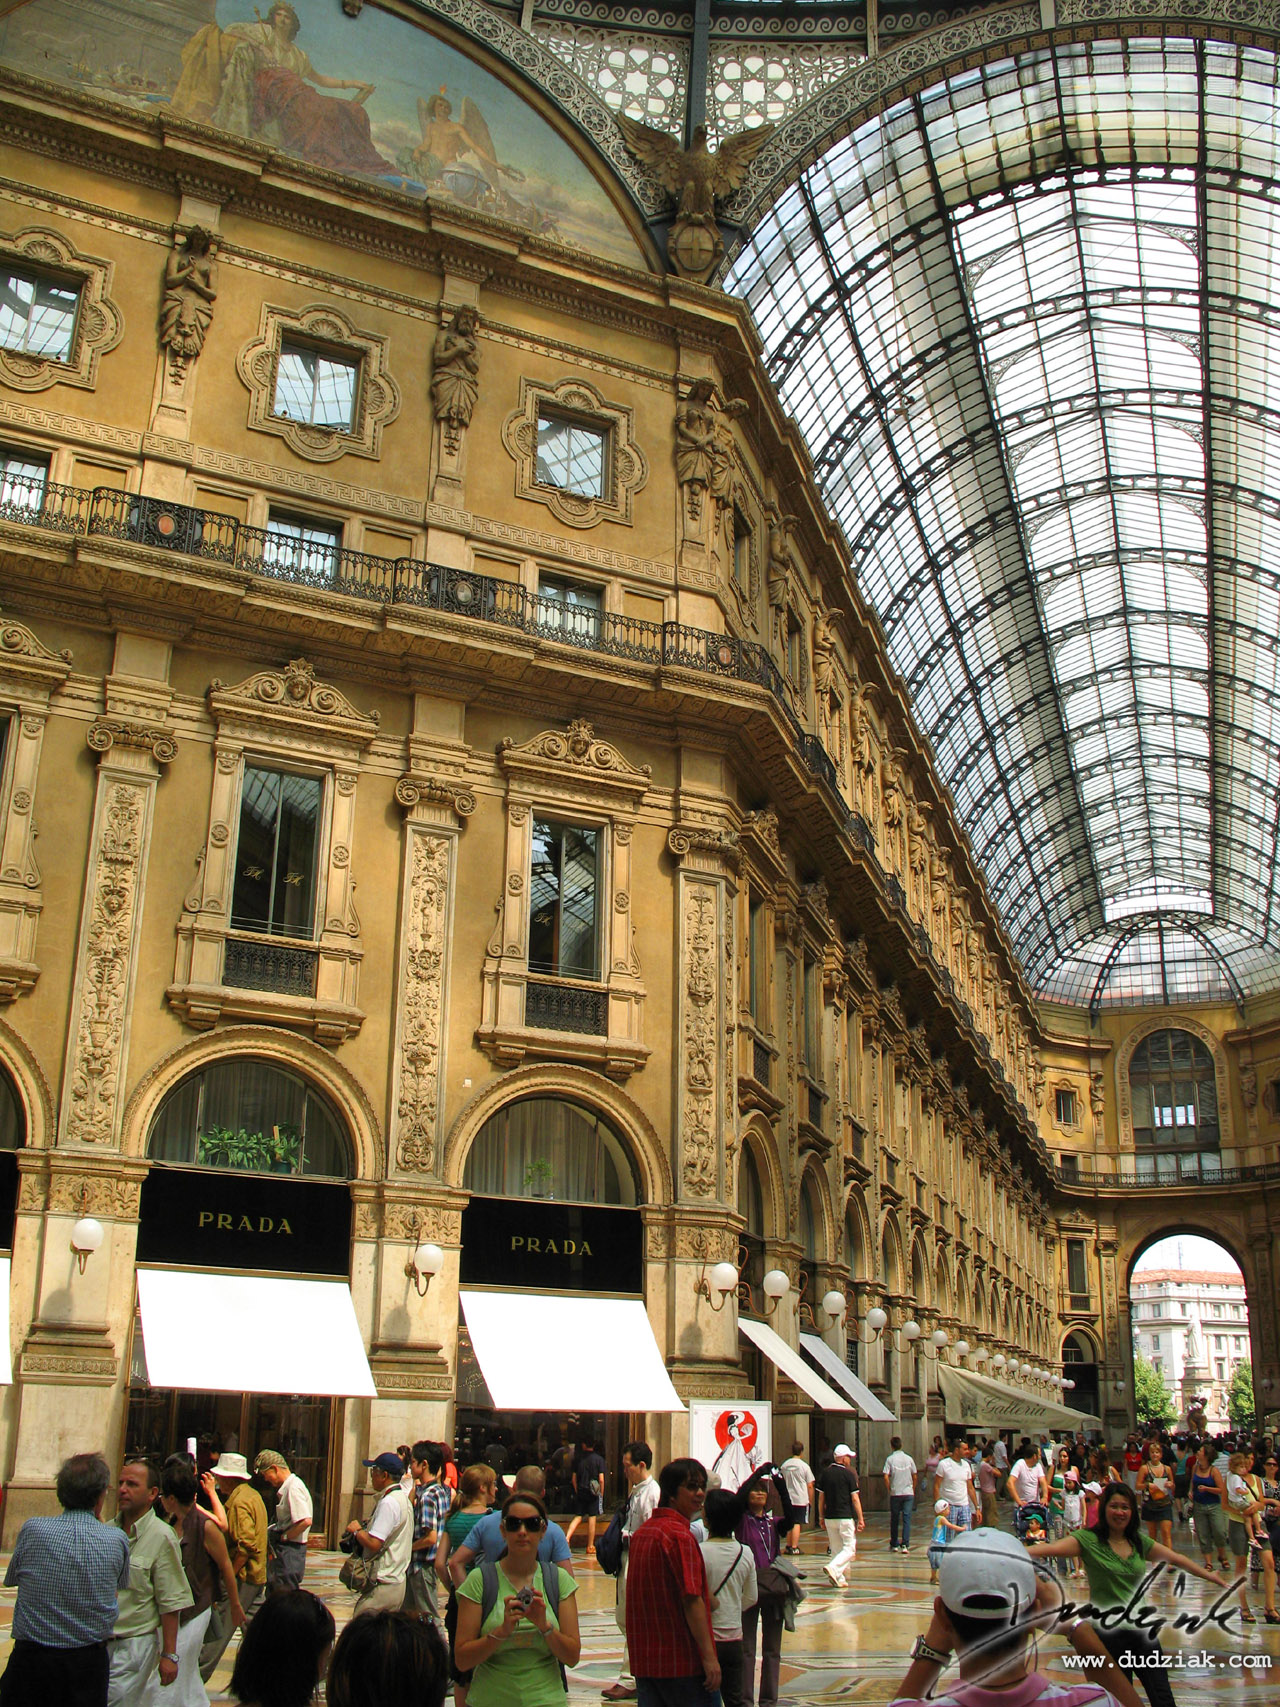 Picture of the Prada store in the Galleria V. Emmanuelle in Milan, Italy.